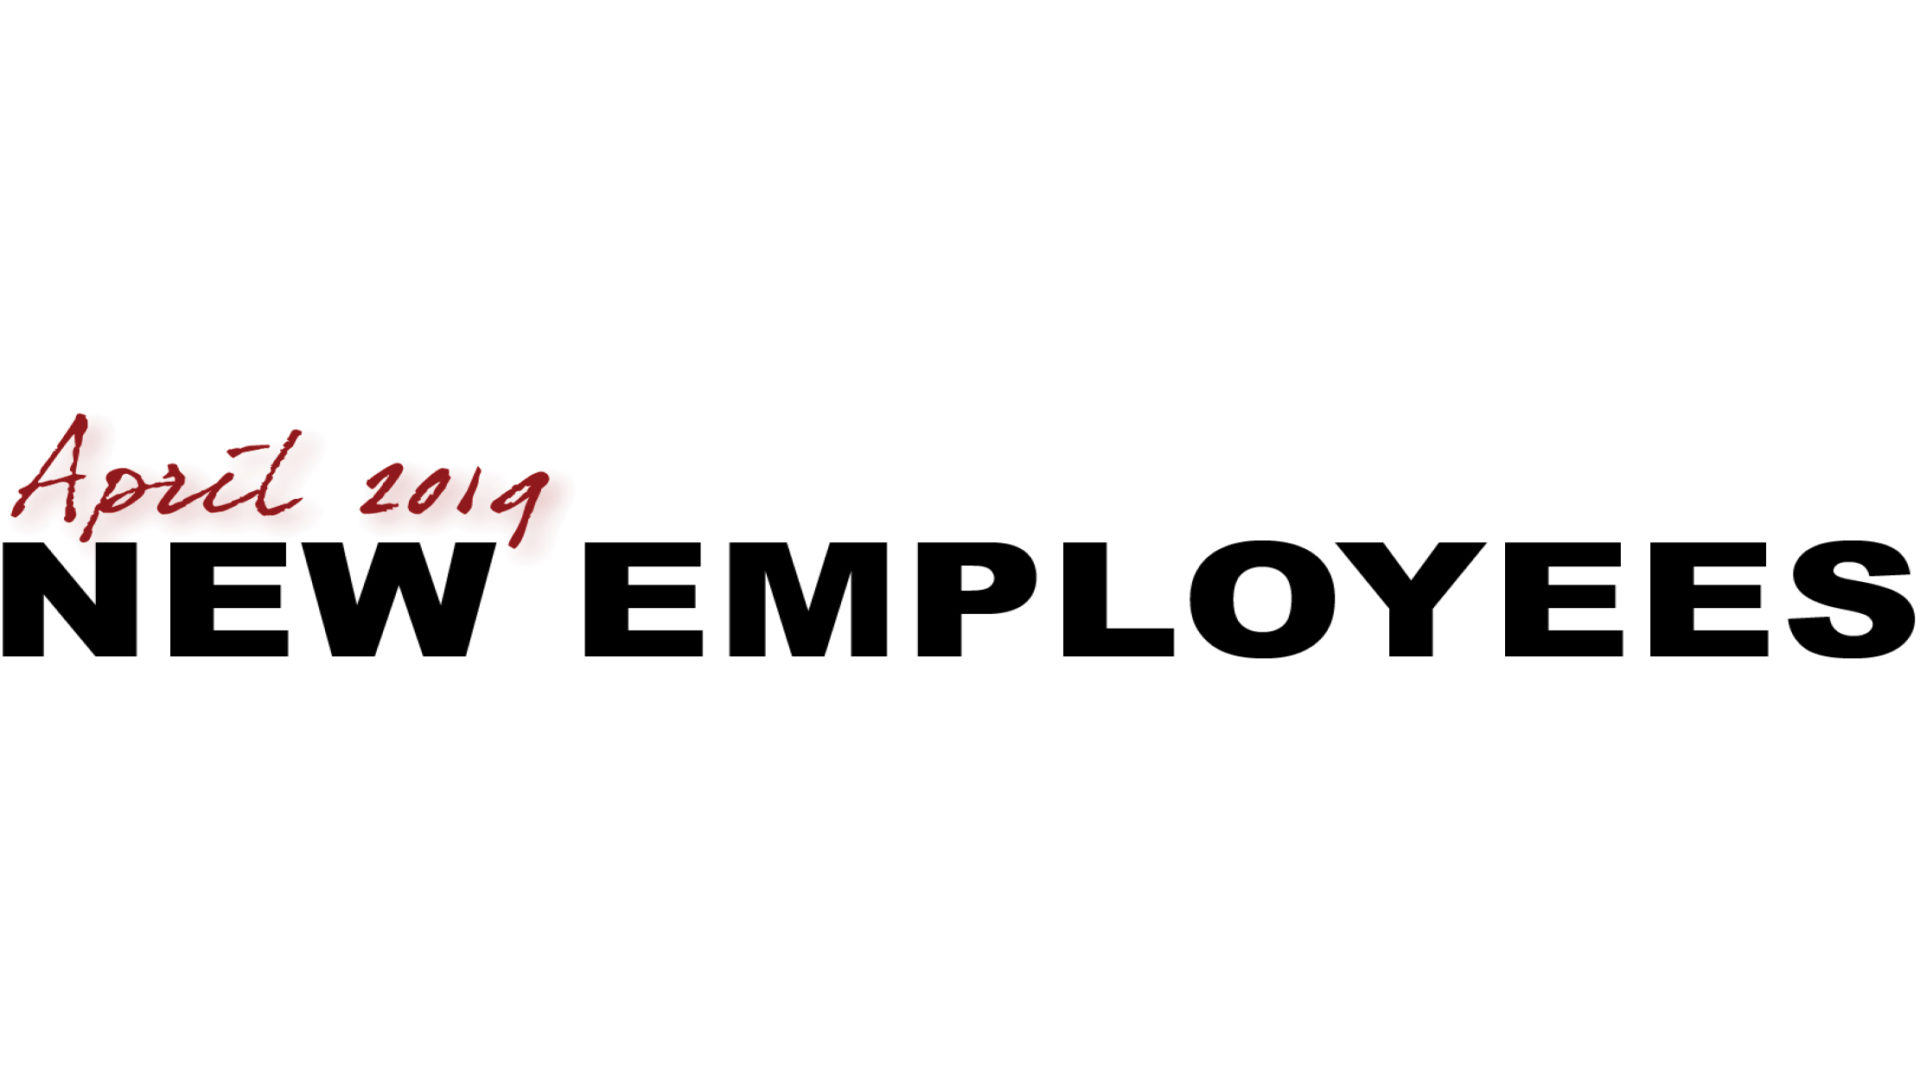 April New Employees